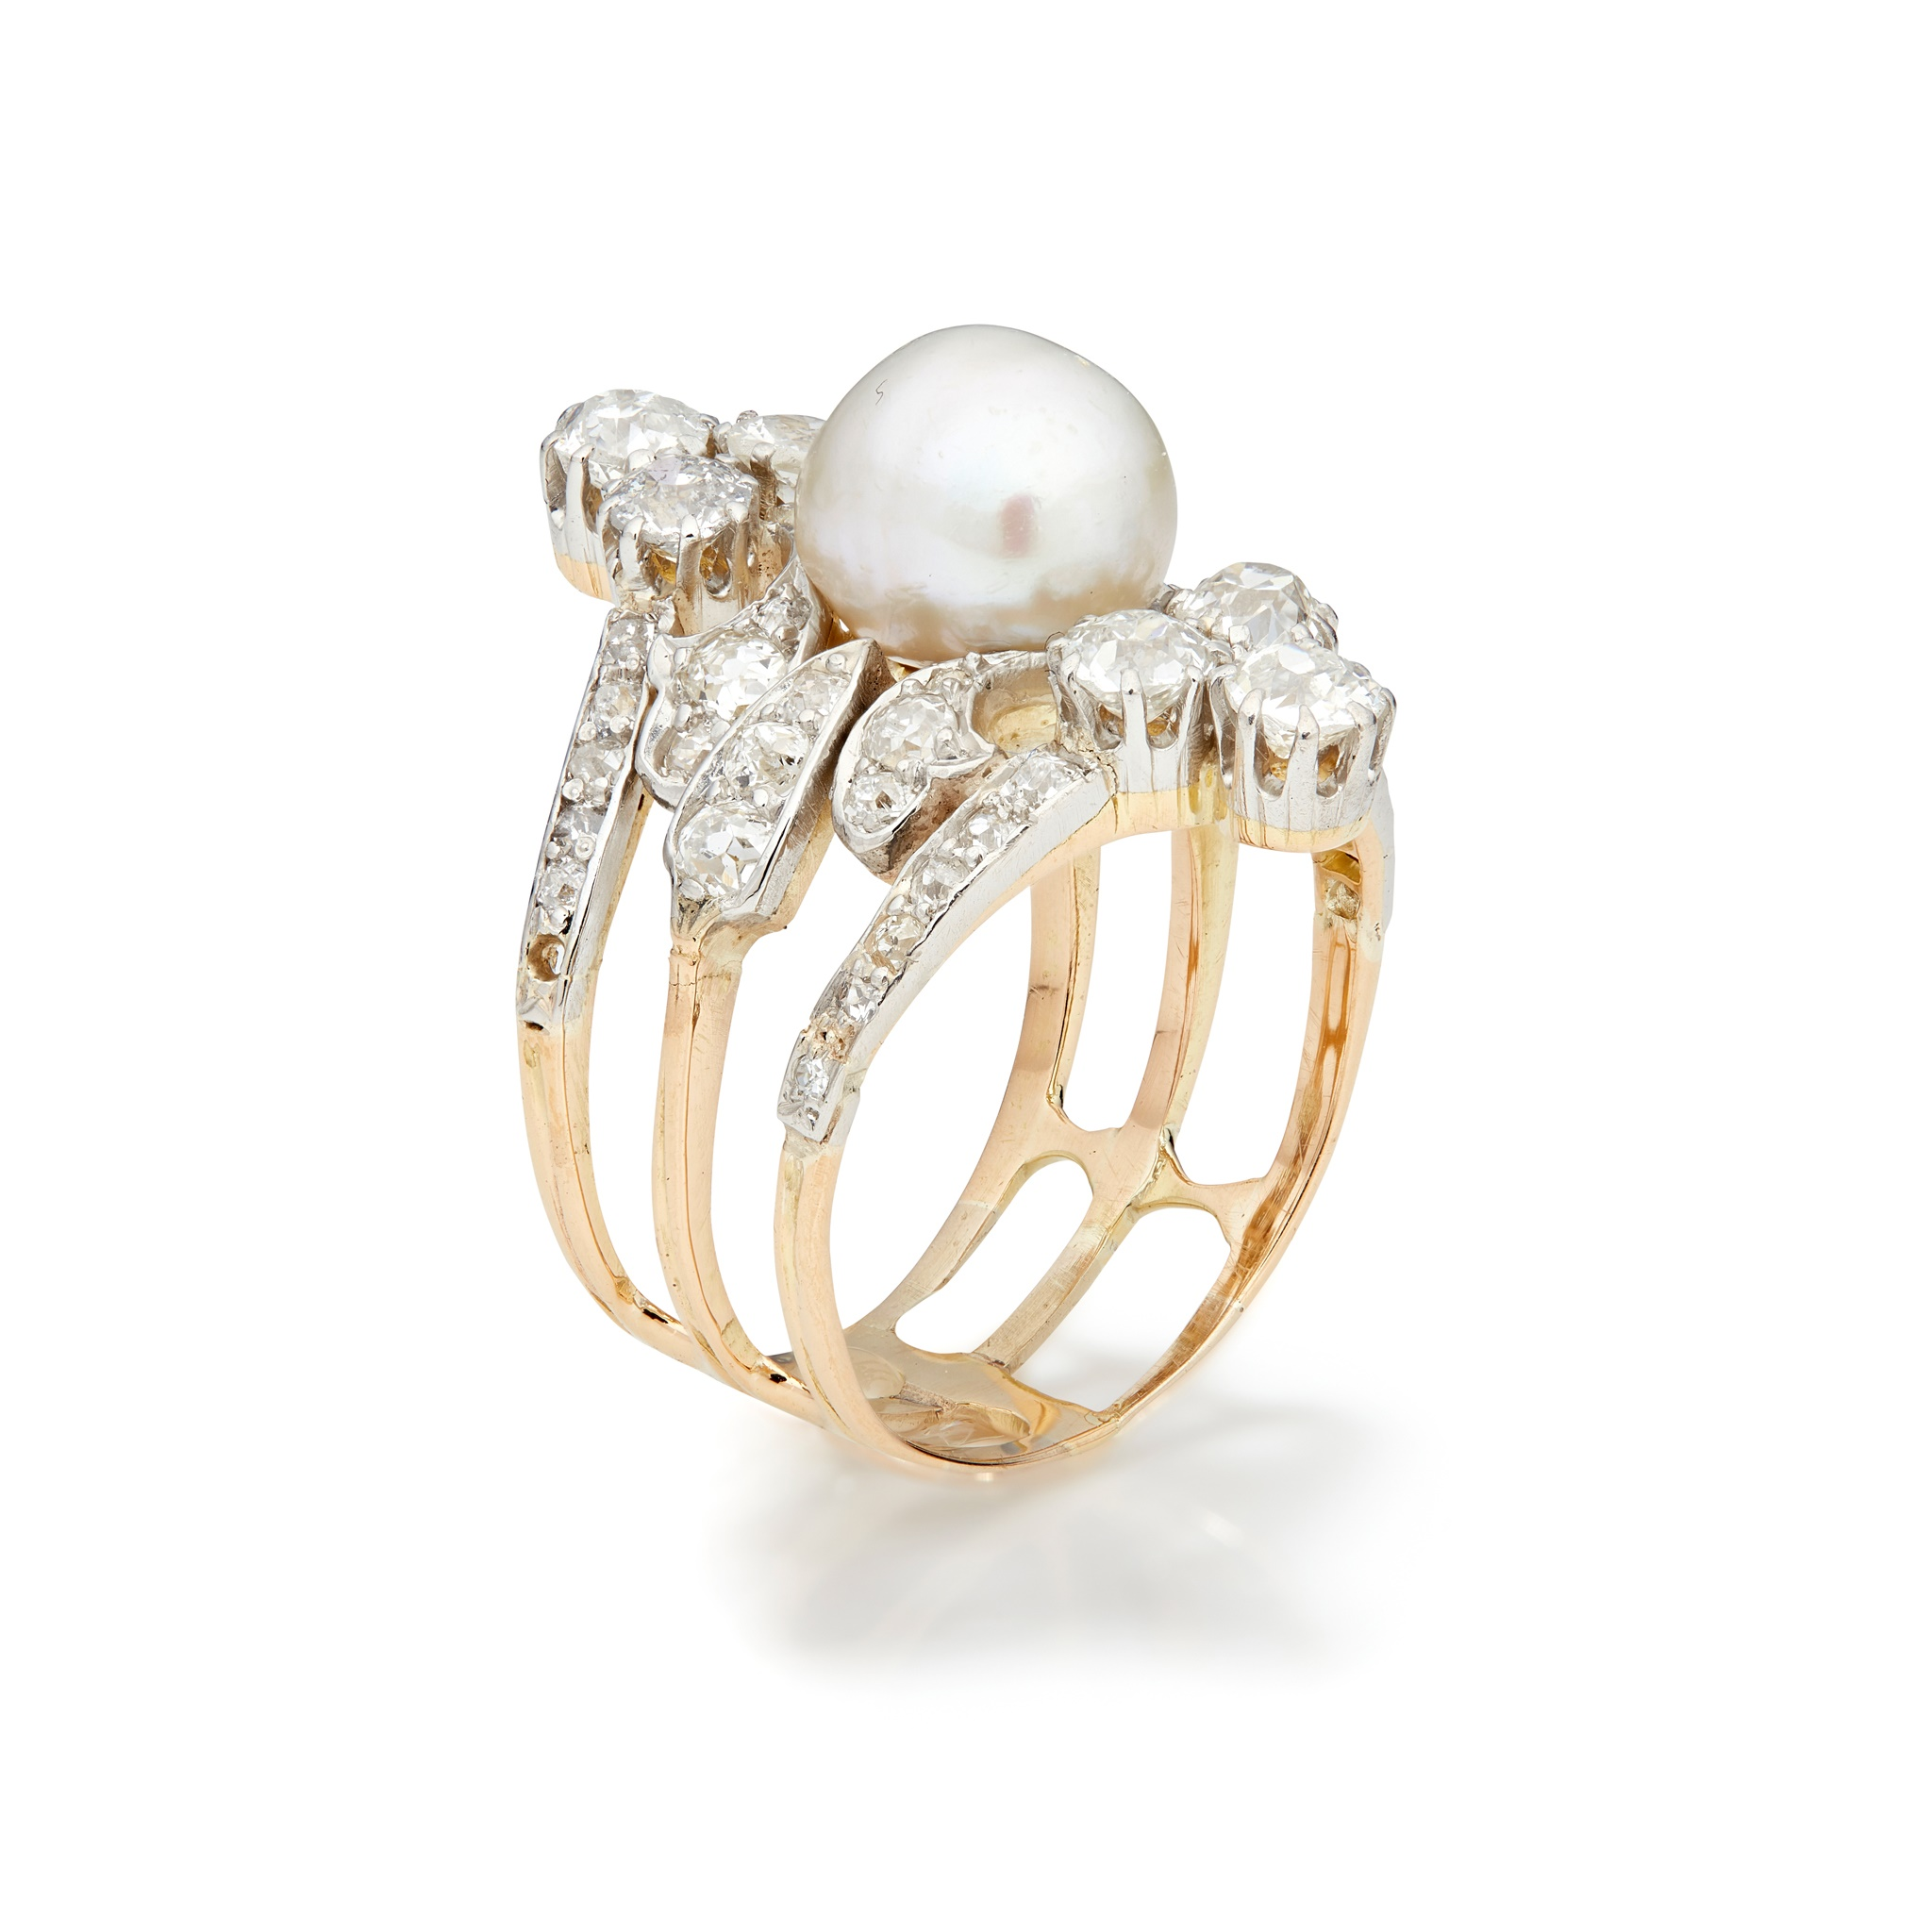 An early 20th century natural pearl and diamond ring The 8.73 x 7.87mm natural pearl mounted on a - Image 5 of 6